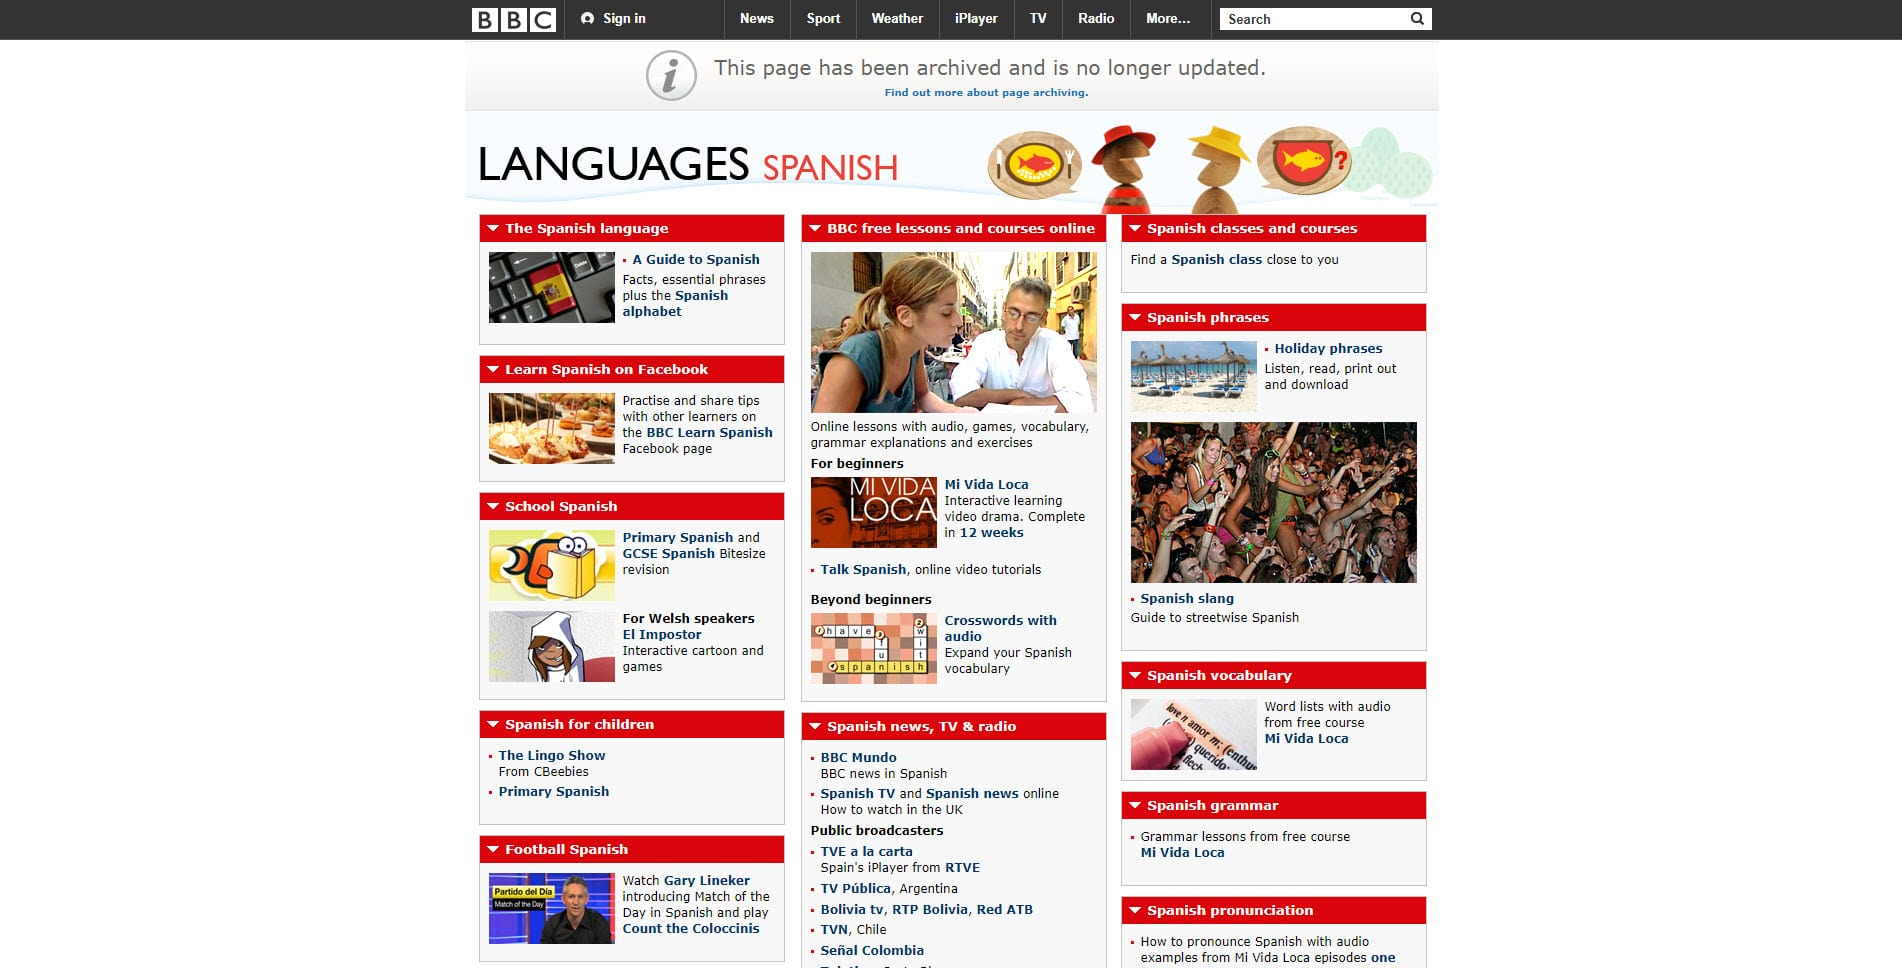 BBC Spanish Learning Website